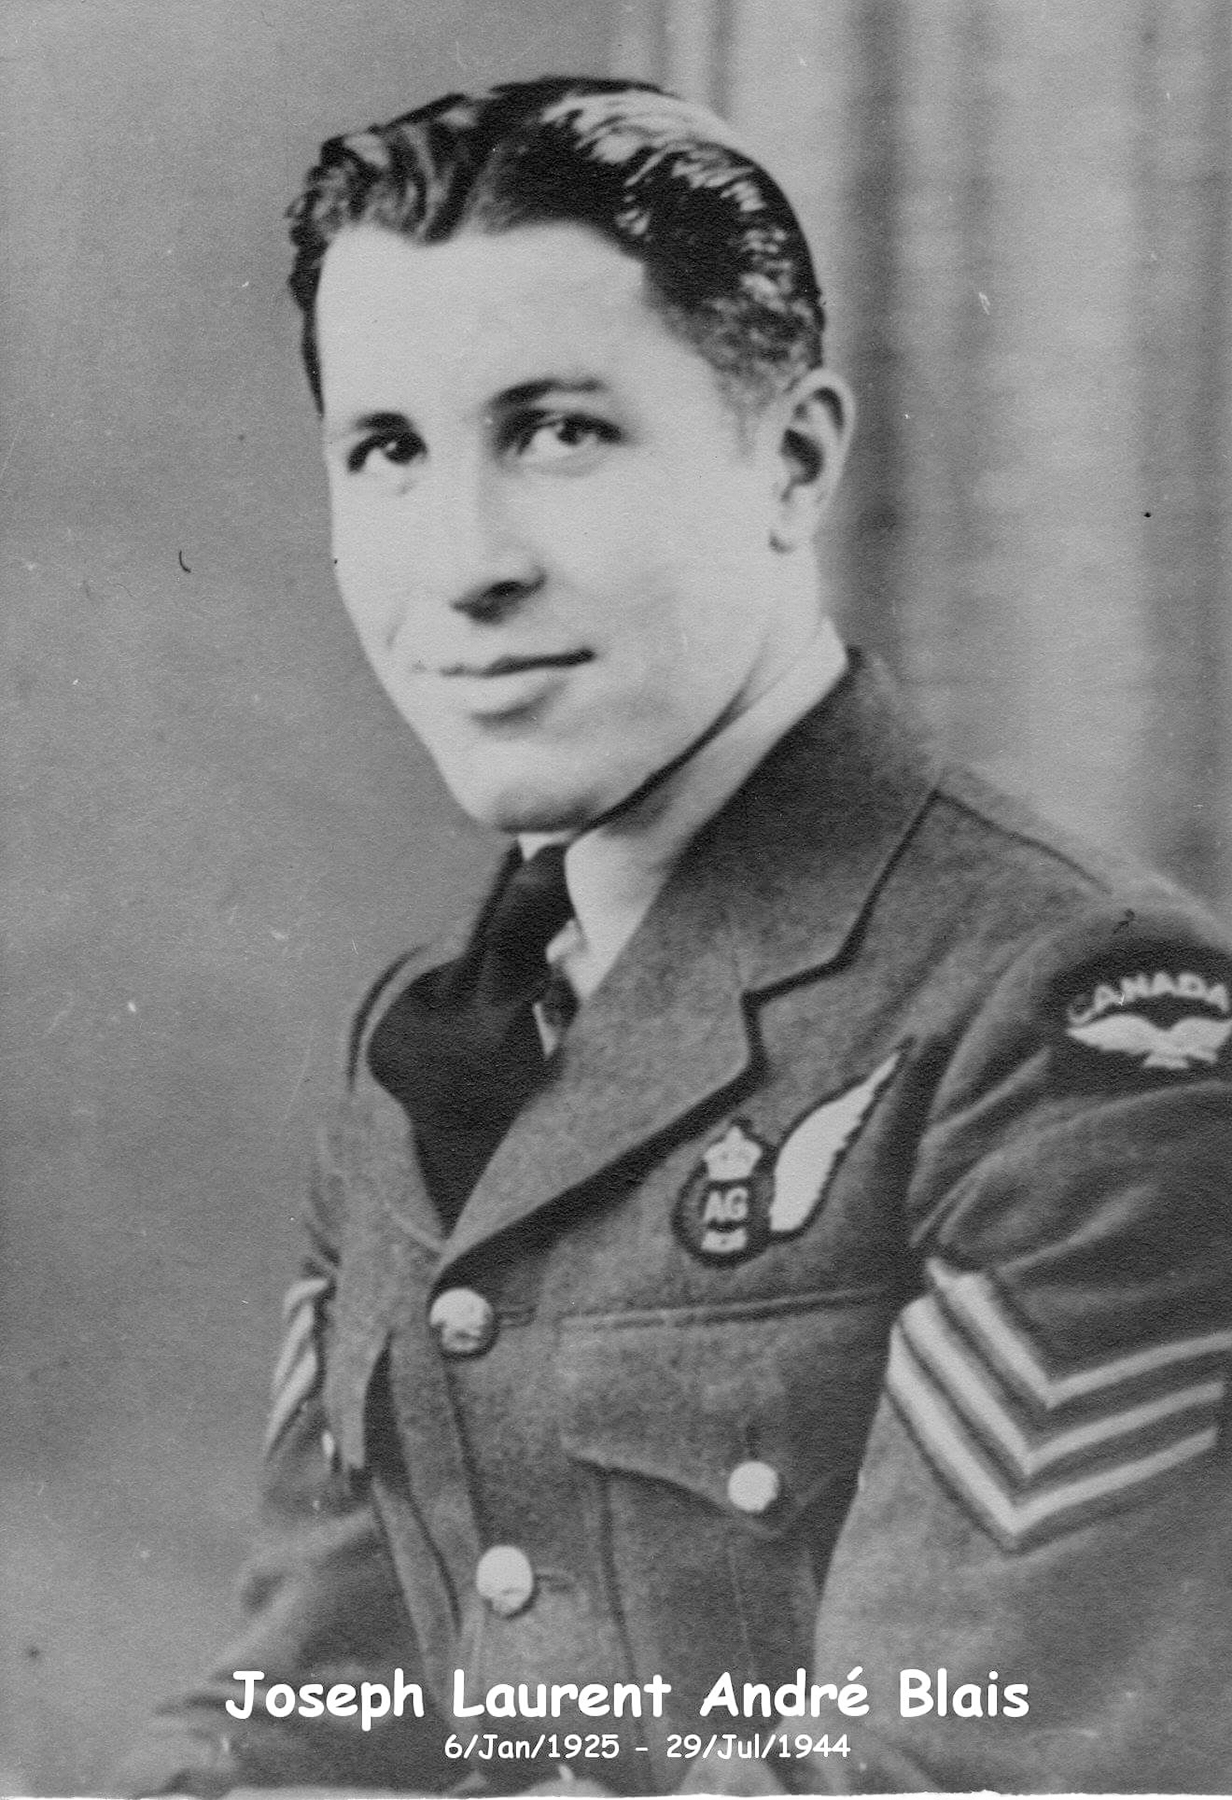 "Pilot Officer Joseph Blais, from Montreal, Québec, died when his Lancaster II LL-687 crashed in Germany on July 29, 1944. The inscription at the bottom of the photo reads: ""Joseph Laurent André Blais 6/Jan/1925 – 19/Jul/1944"". PHOTO: http://www.veterans.gc.ca/eng/remembrance/memorials/canadian-virtual-war-memorial/detail/2107148?Joseph%20Laurent%20Andre%20Blais"